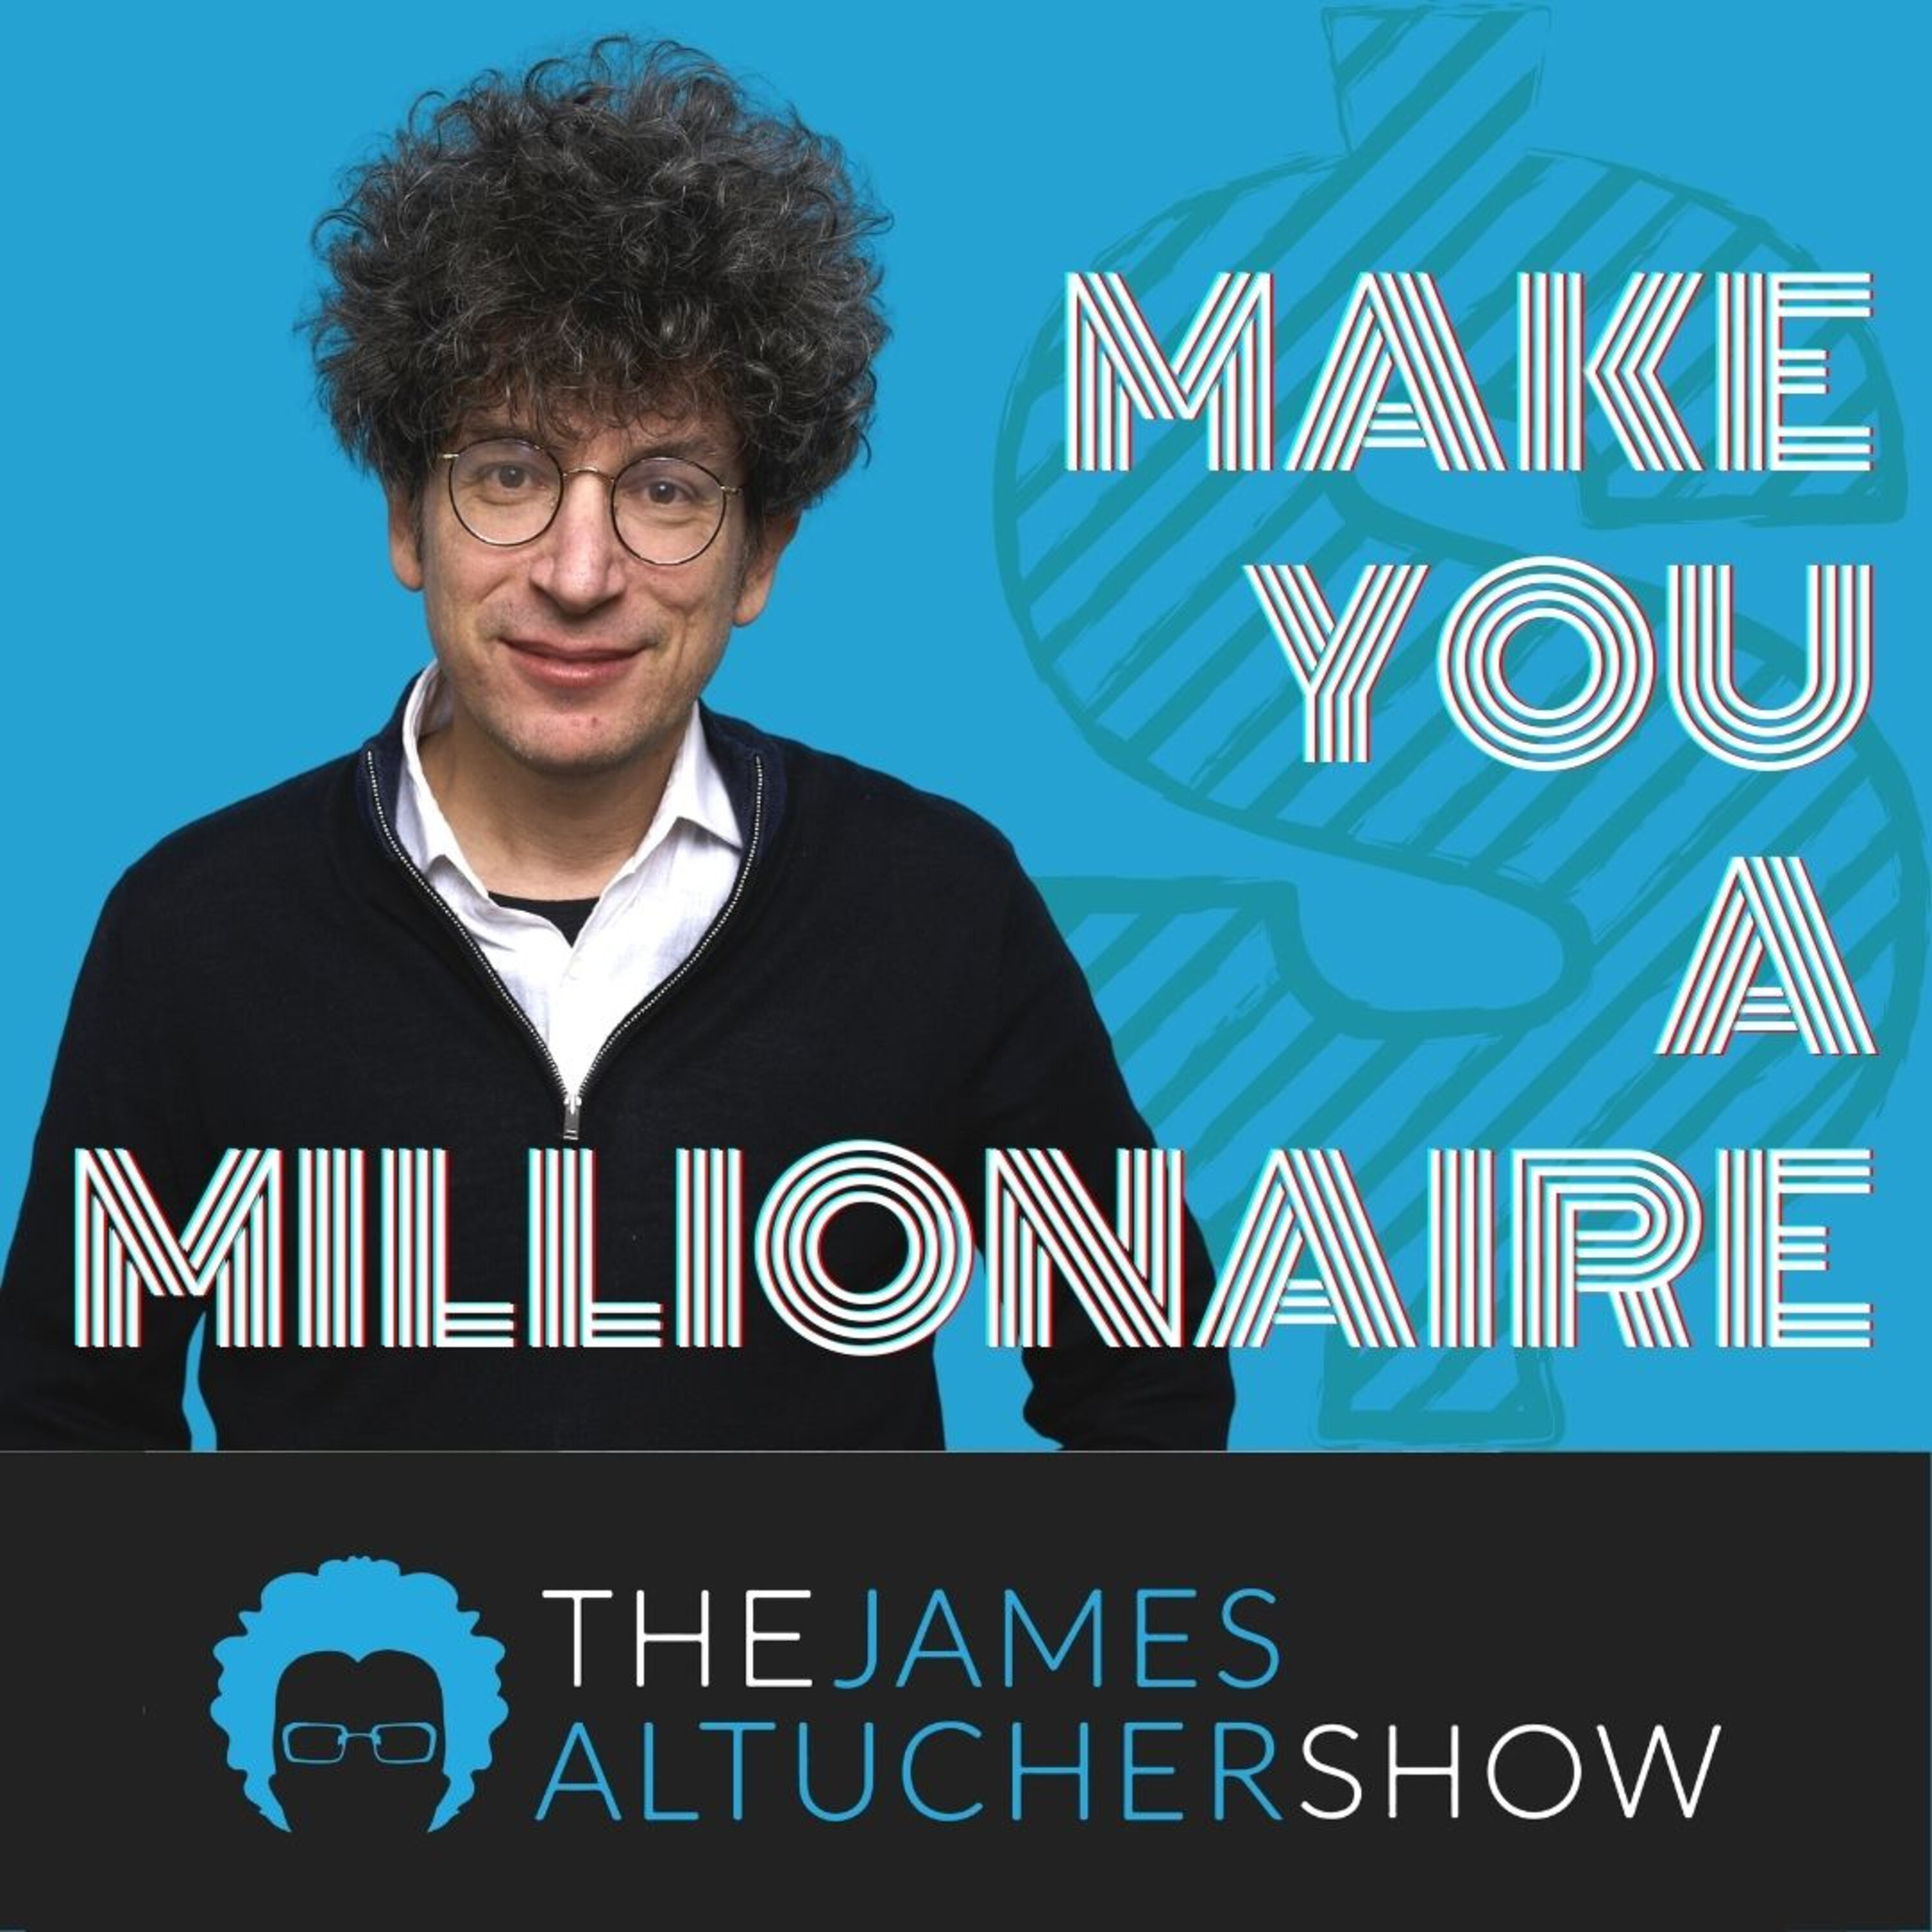 Make You a Millionaire! Paolo EP01: Idea Sex! Combining Passion, Knowledge and Skill!